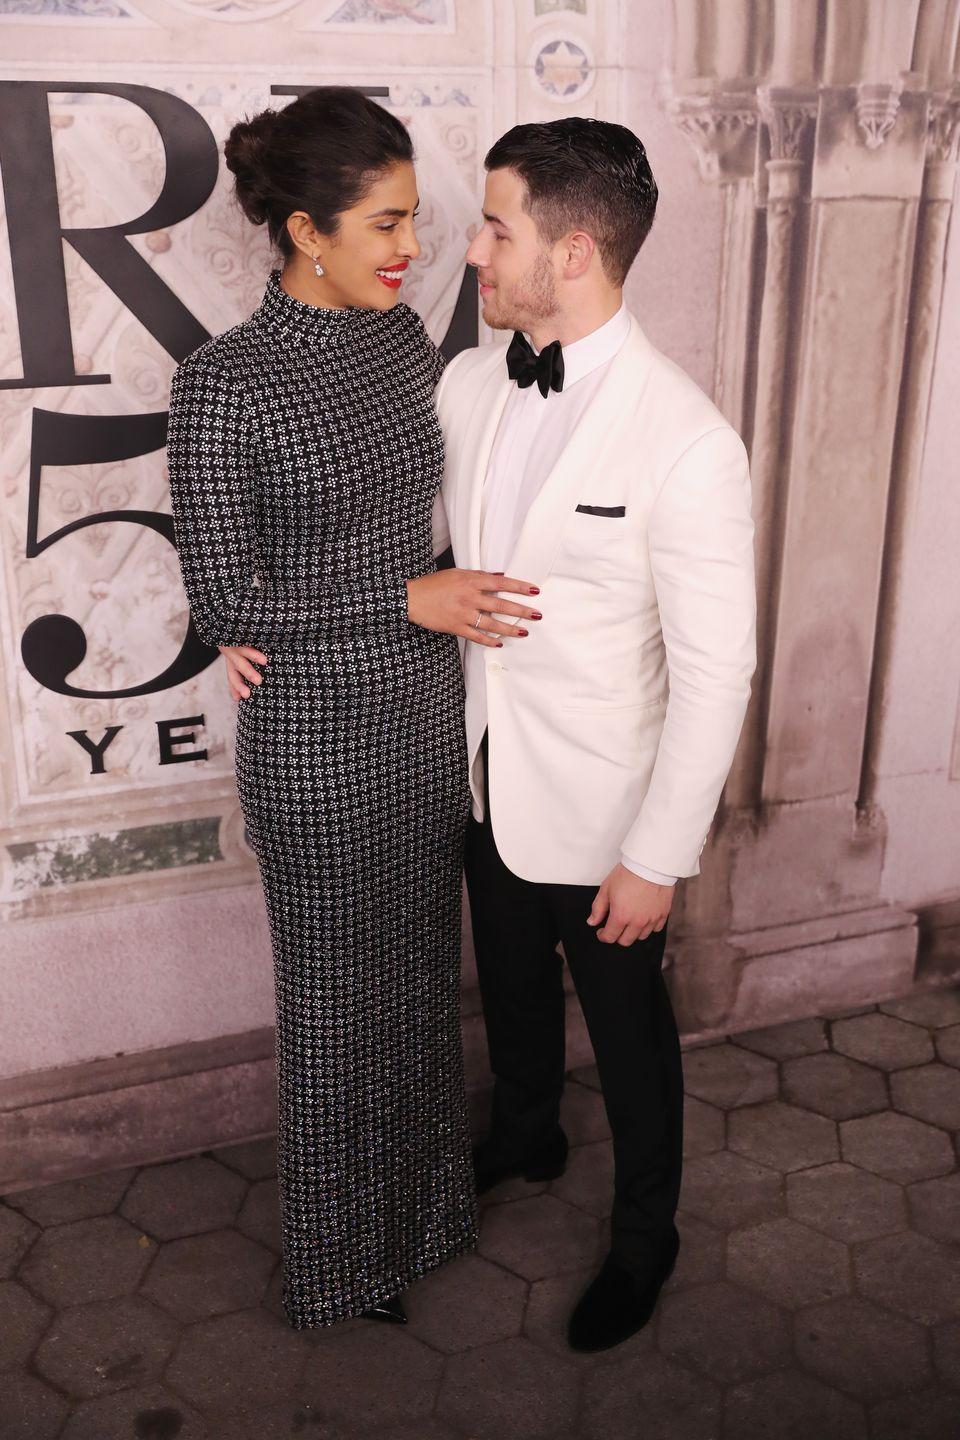 <p><strong>Age gap: </strong>10 years</p><p>Priyanka Chopra and Nick Jonas got married in 2018 after a whirlwind romance. The singer, who is 10 years Priyanka's junior, proposed after just two months of dating, and they were married within the year. The couple first met at the 2017 Met Gala when they were both dressed by Ralph Lauren.</p>